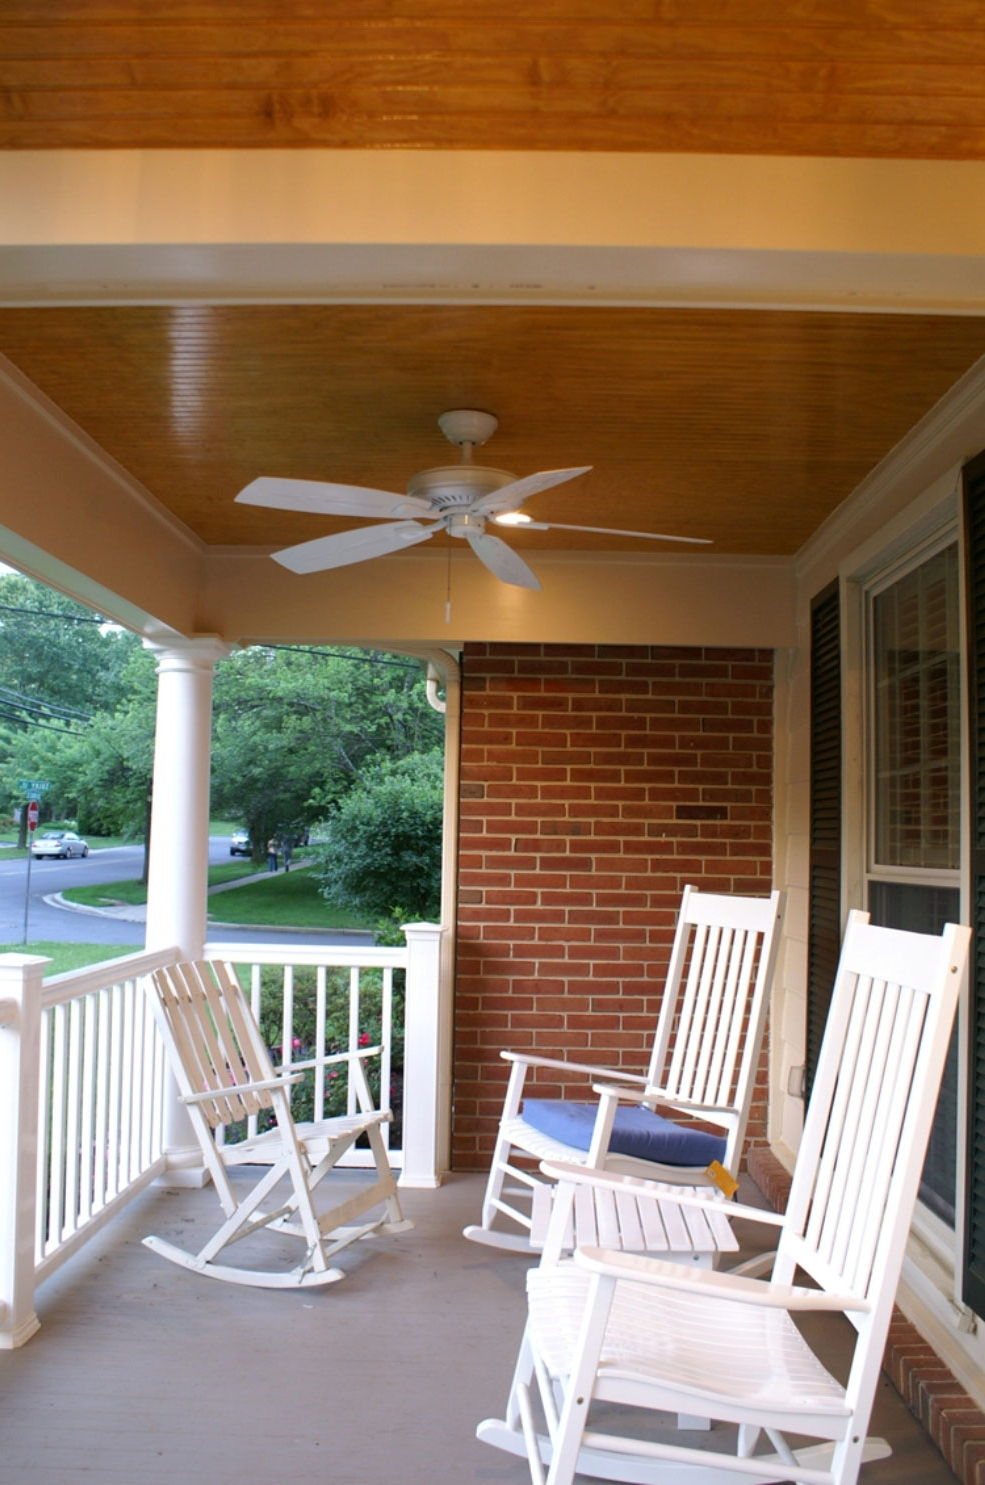 Outdoor Ceiling Fans For Porch Intended For Most Current Ceiling: Glamorous Outdoor Ceiling Fans Without Lights Lowes Ceiling (View 13 of 20)